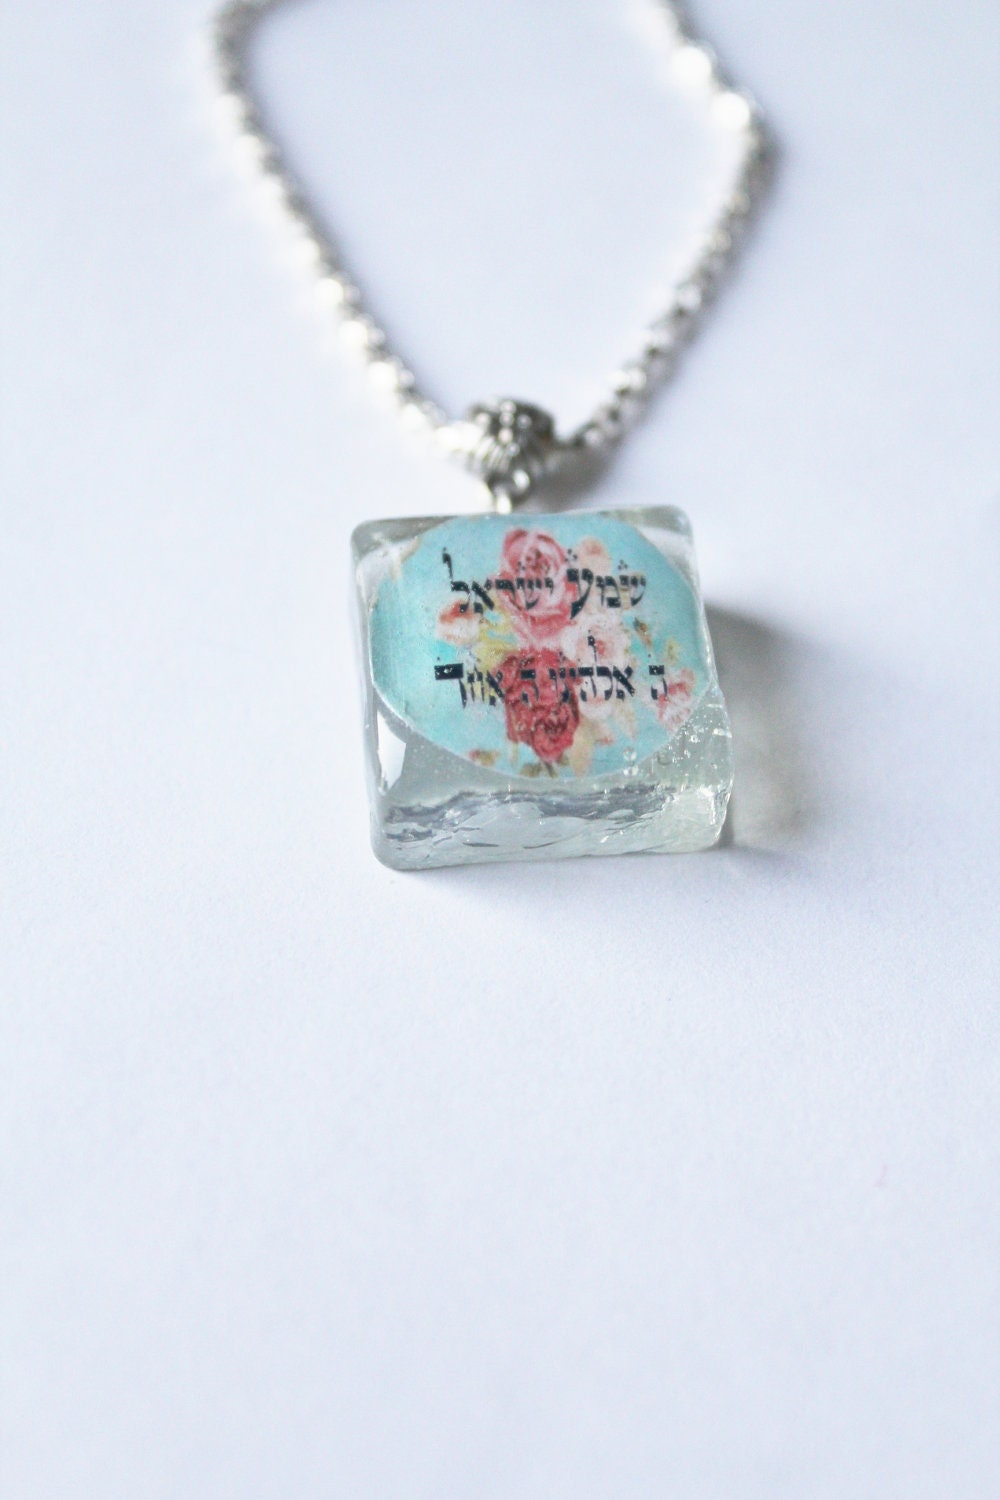 Shema cameo necklace, Chai necklace, Hebrew charm necklace, Hebrew prayer necklace, Chai for life necklace